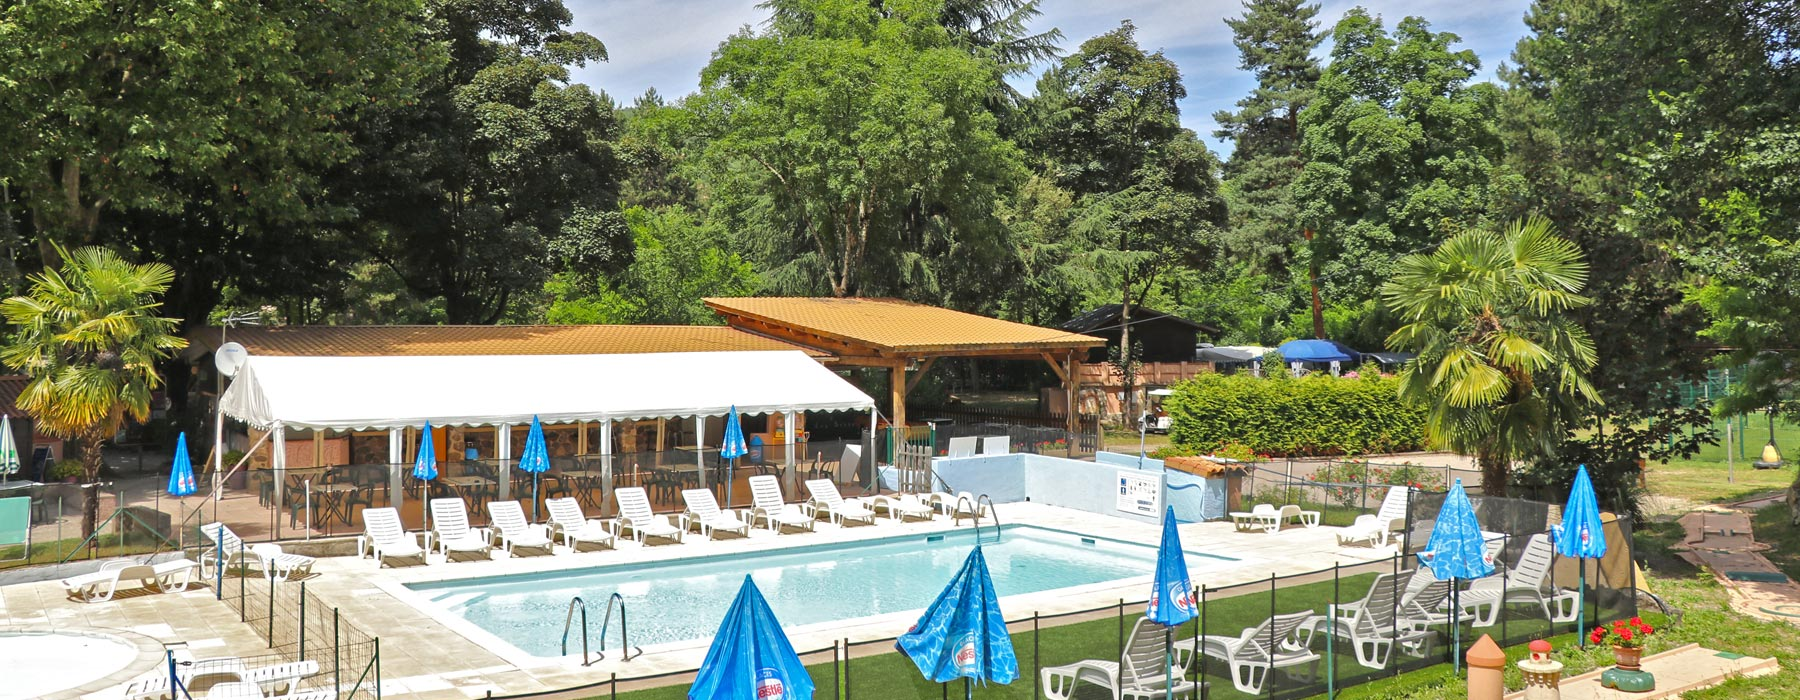 Camping dives sur mer avec piscine camping piscine for Camping evian les bains avec piscine